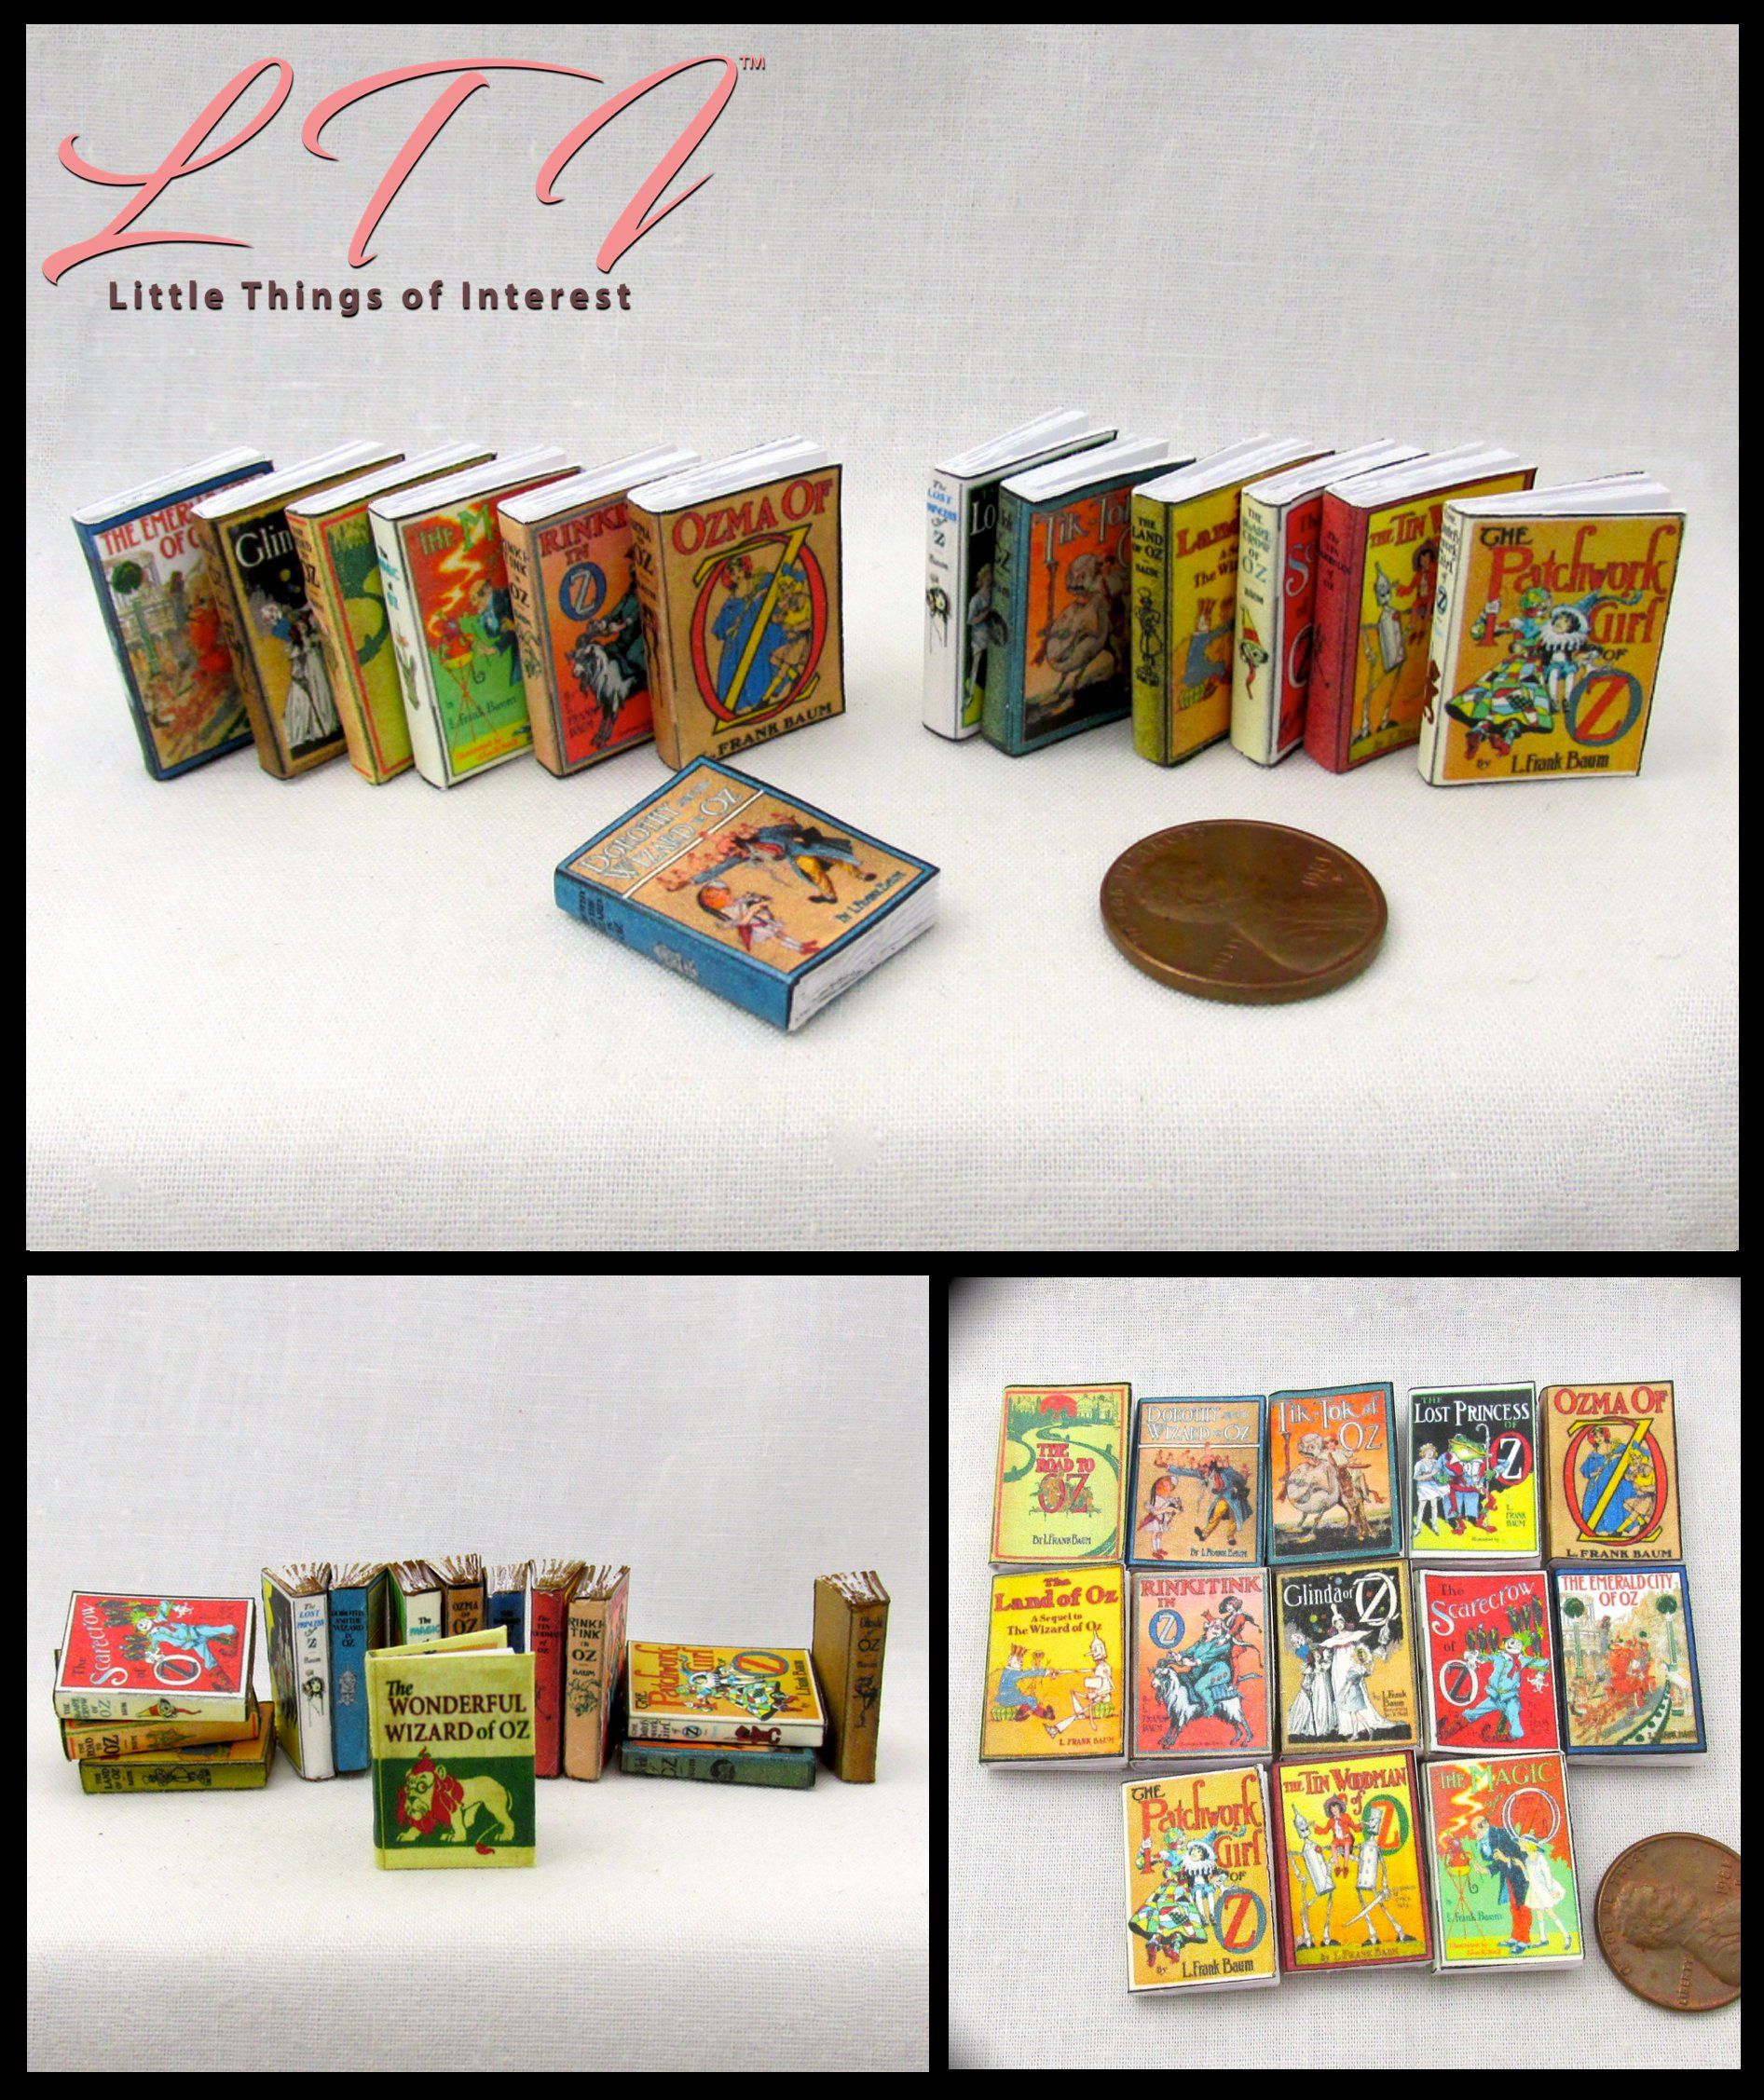 Dollhouse Miniature Set of 8 Books with Blank Pages 1:12 Scale